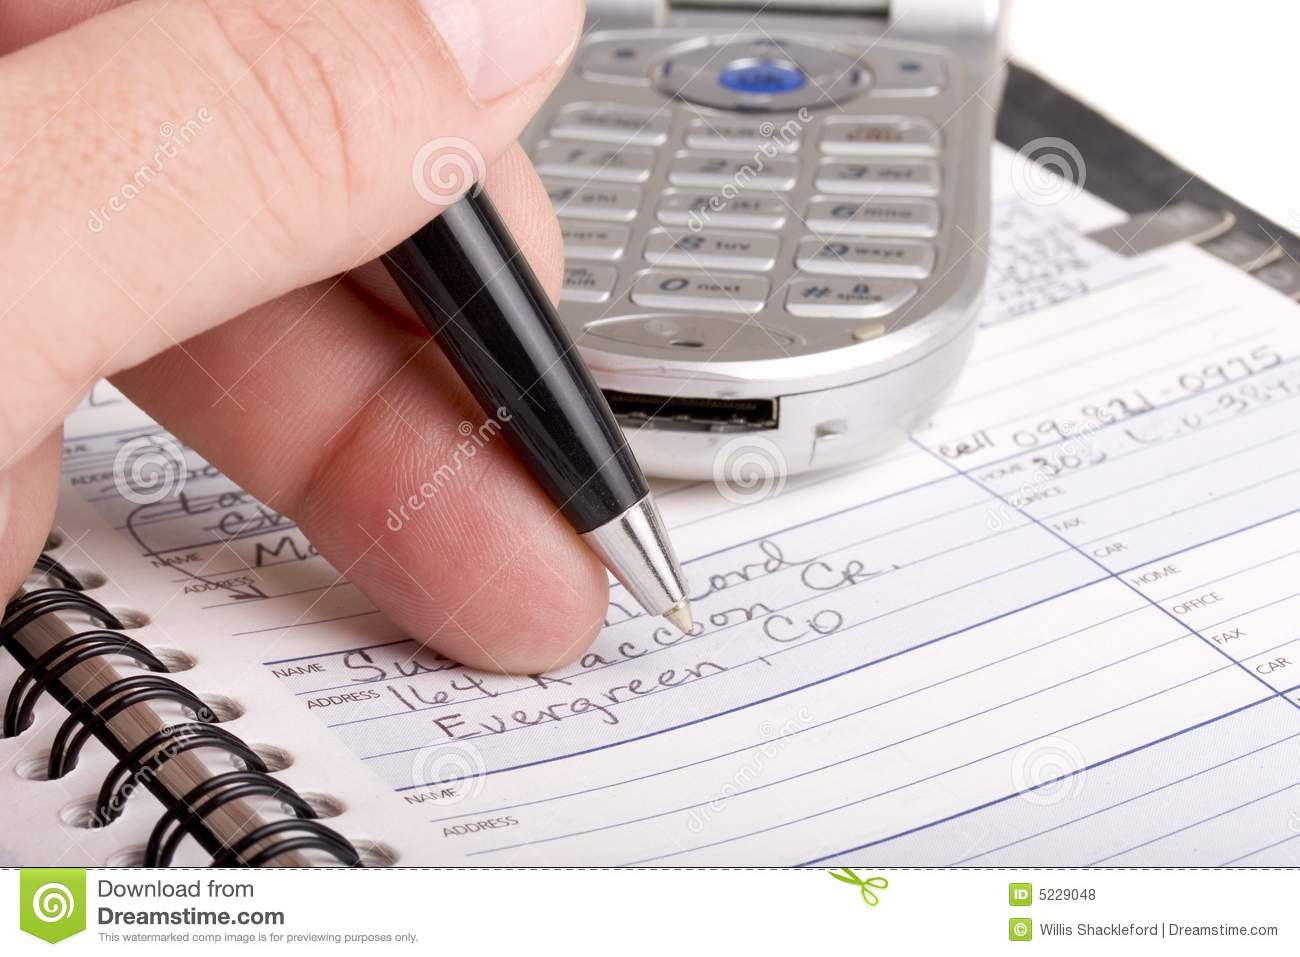 writing in address book with cell phone royalty free stock